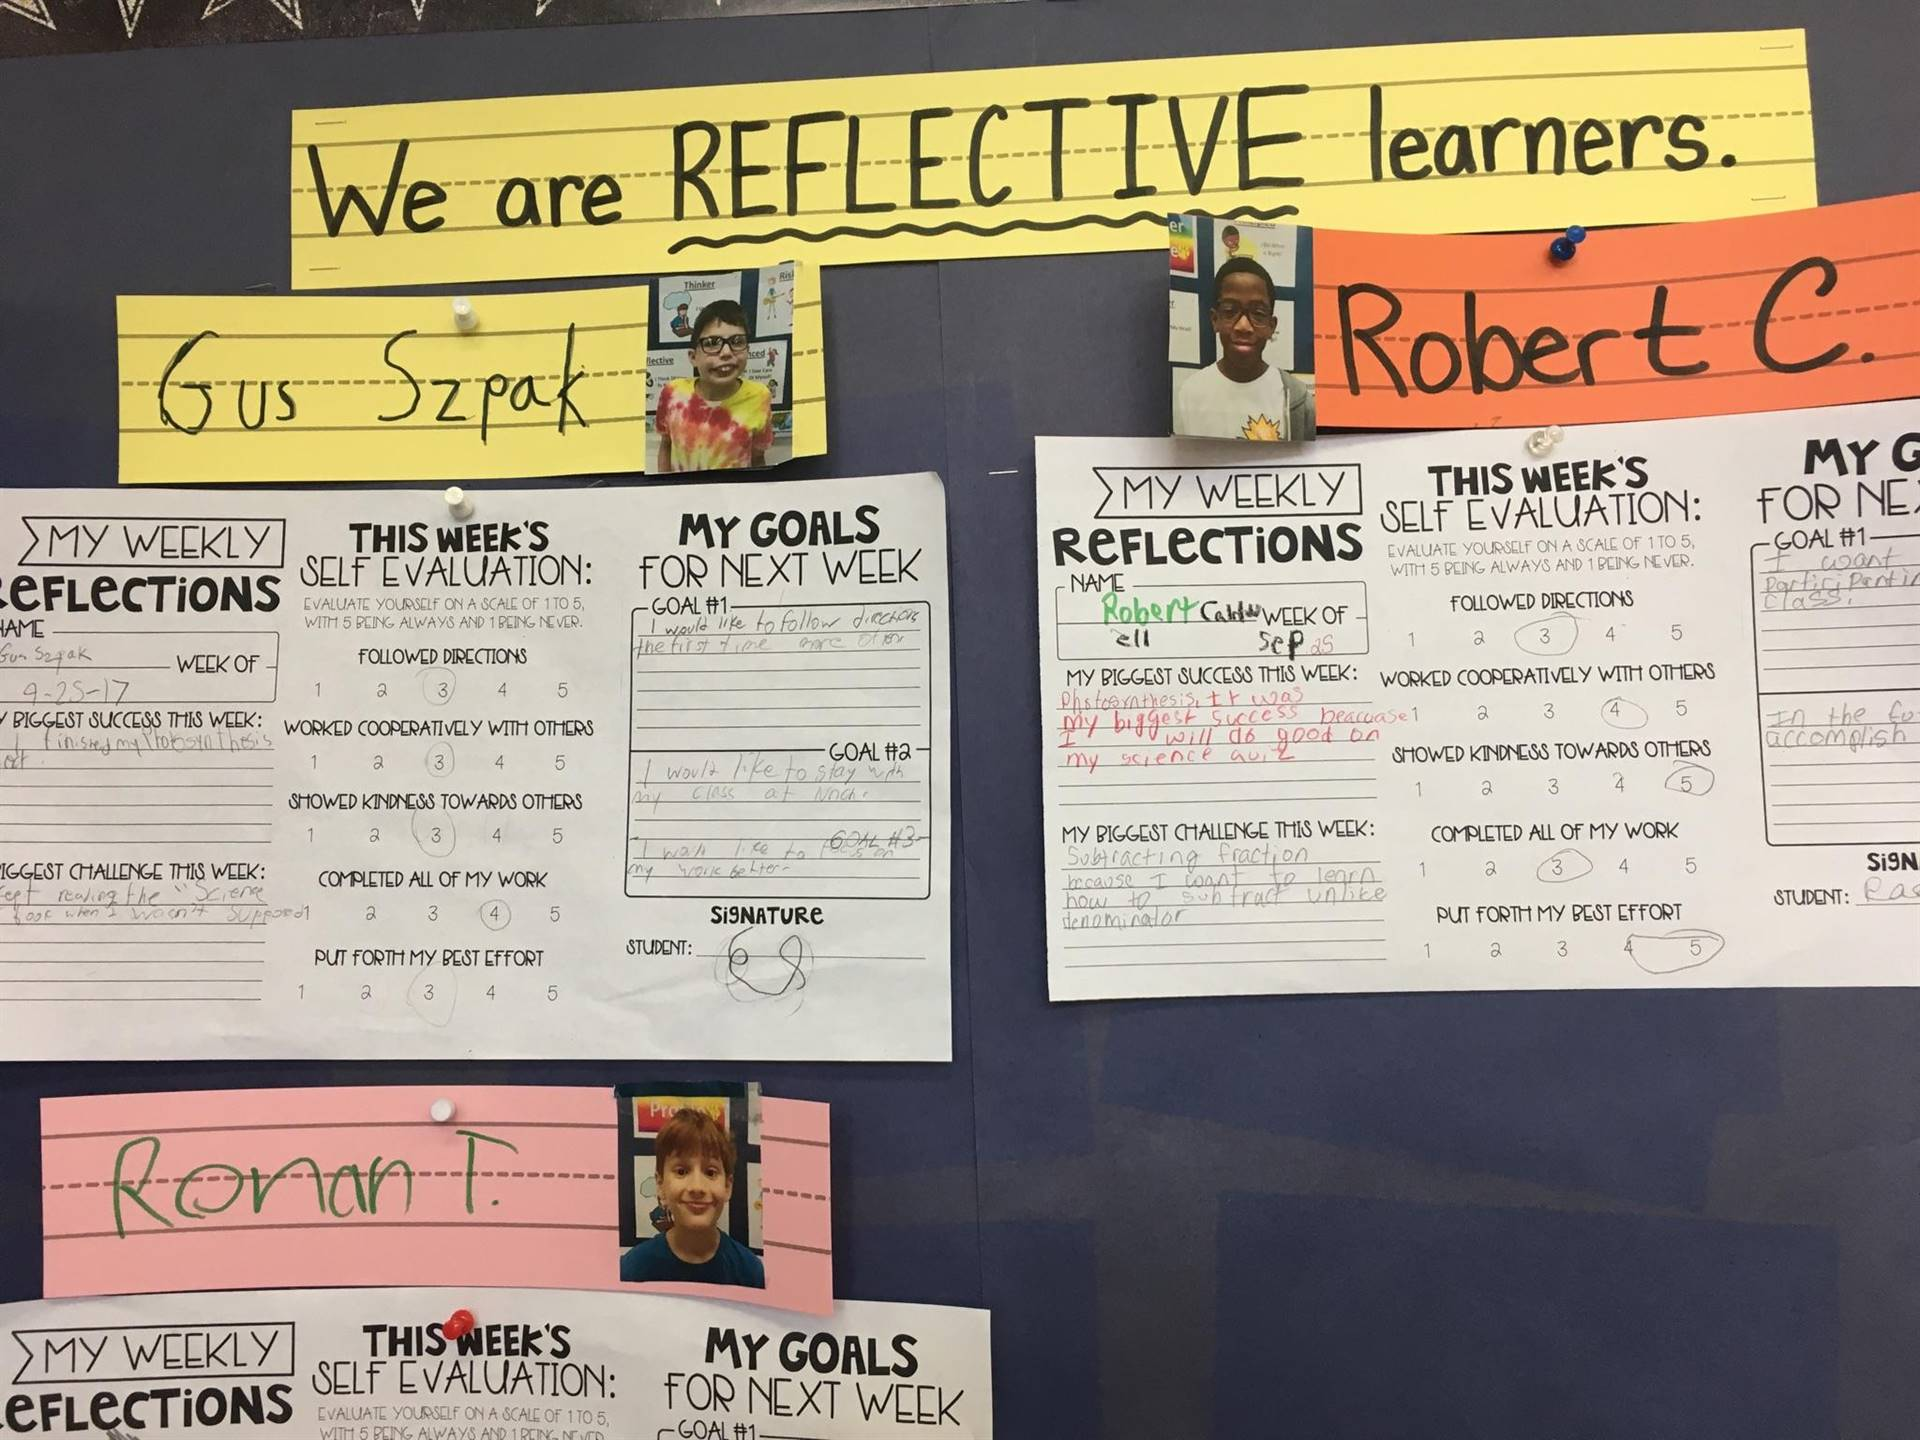 We are REFLECTIVE learners!